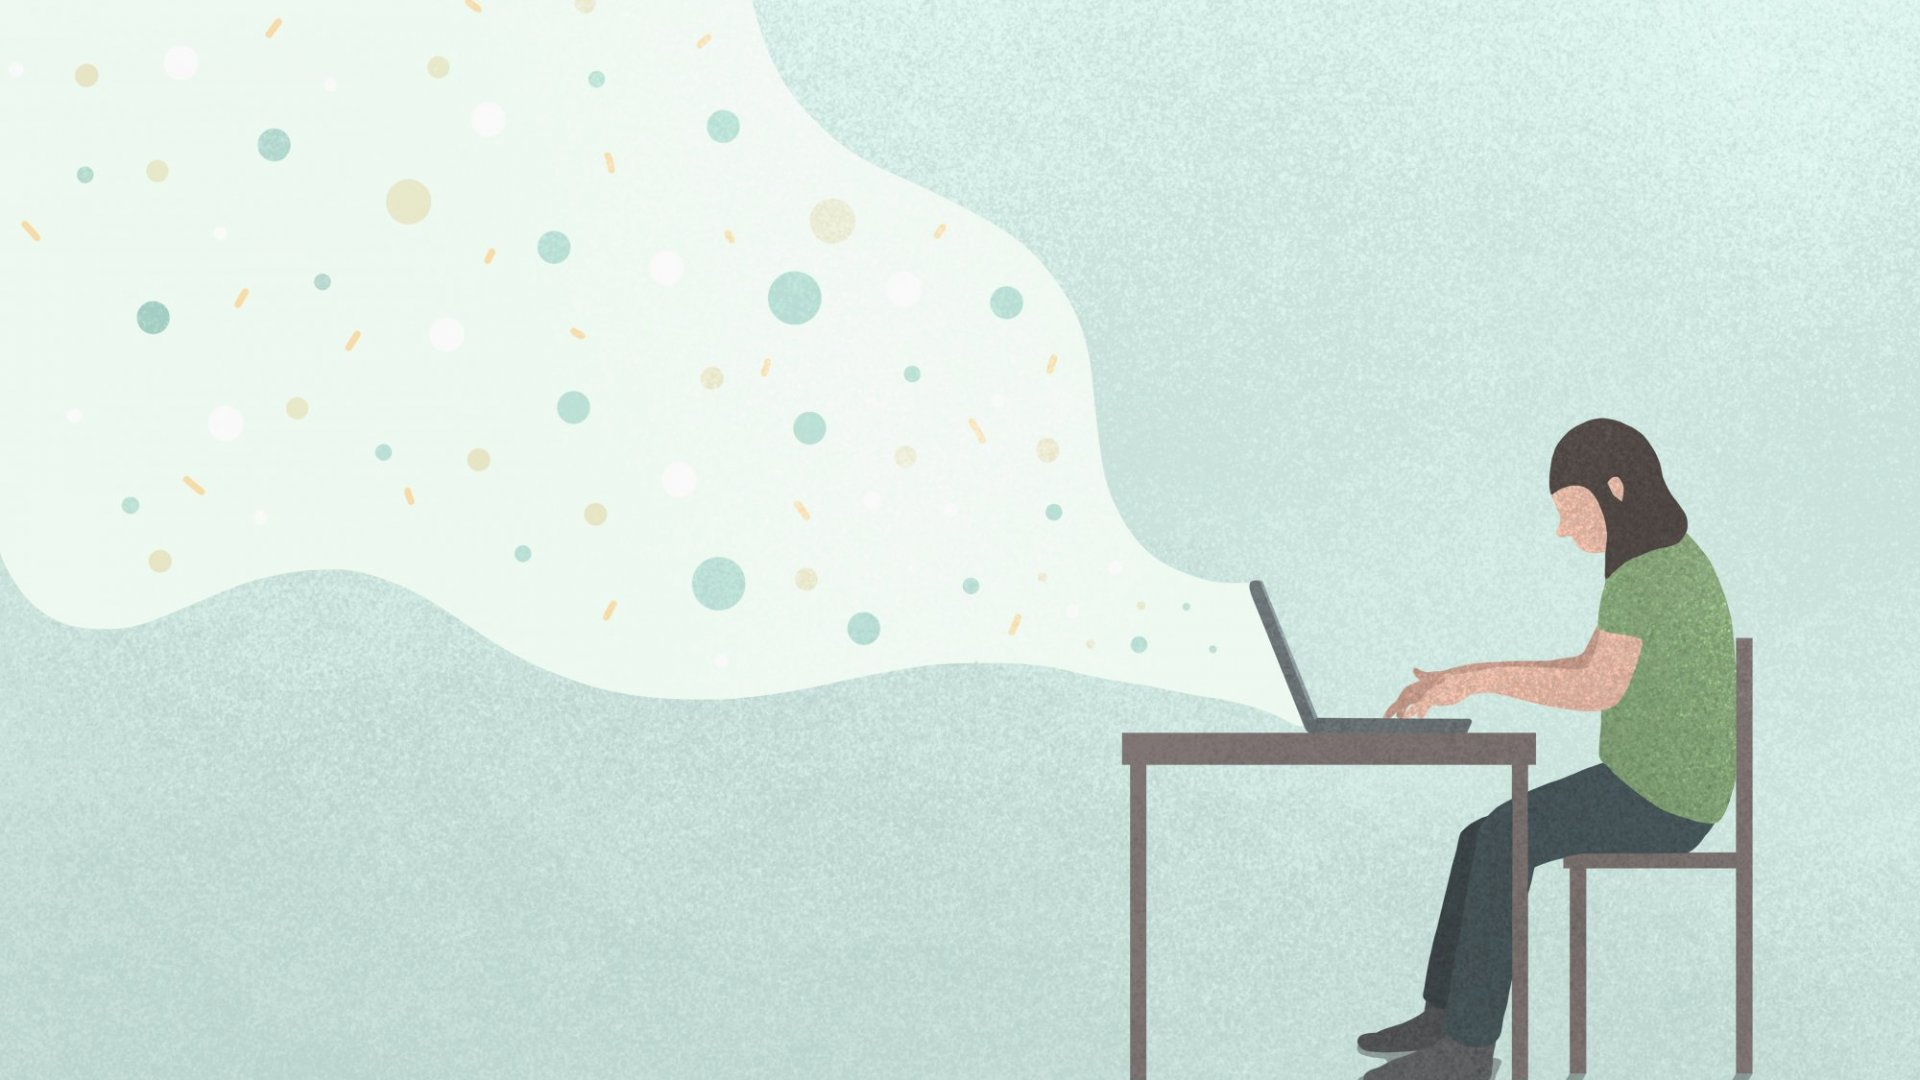 Hiring Remotely? Here's How to Change Your Hiring Strategy to Get the Best Candidates